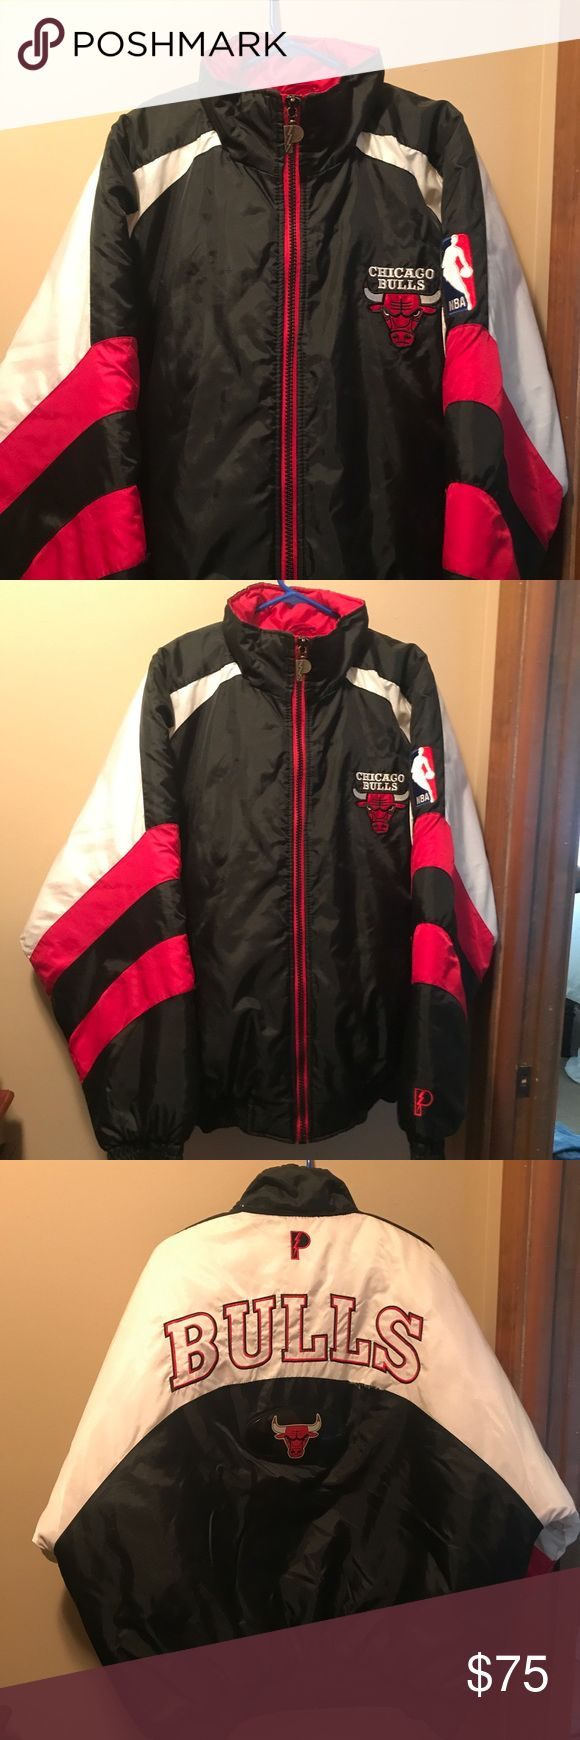 Vtg 90's Chicago Bulls Puffer Coat Awesome men's puffer from the 90's, sporting everyone's favorite Bulls! Missing it's original hood, overall excellent condition minus a split seam (that I plan on fixing soon - will update listing when done). Vintage Jackets & Coats Puffers